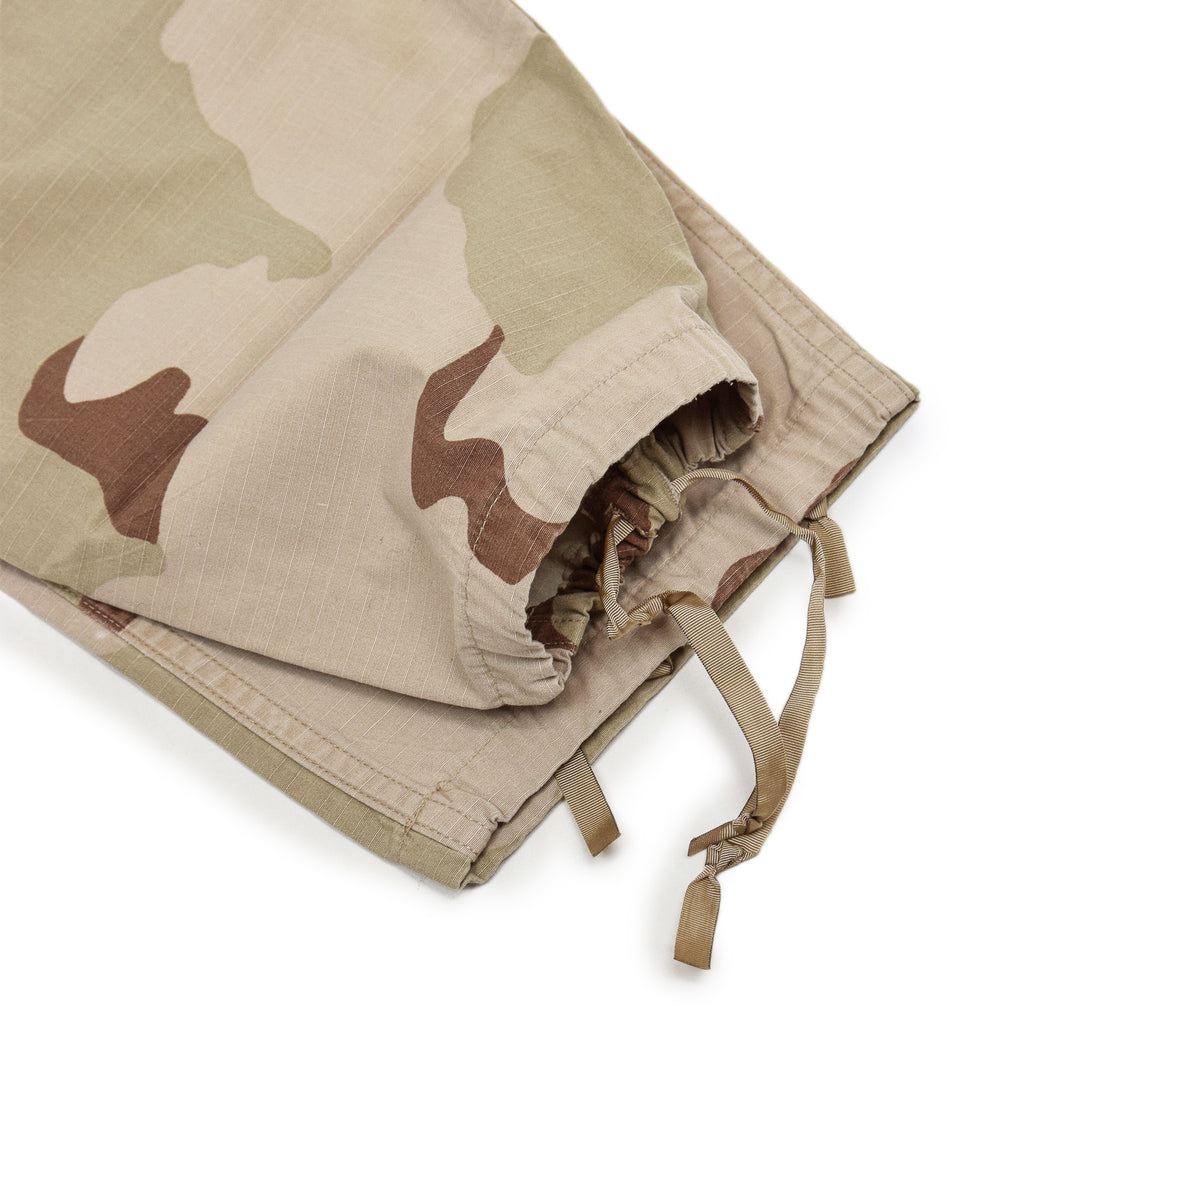 Vintage US Army Desert Camo Ripstop Cargo Combat Field Trousers M Short drawstring